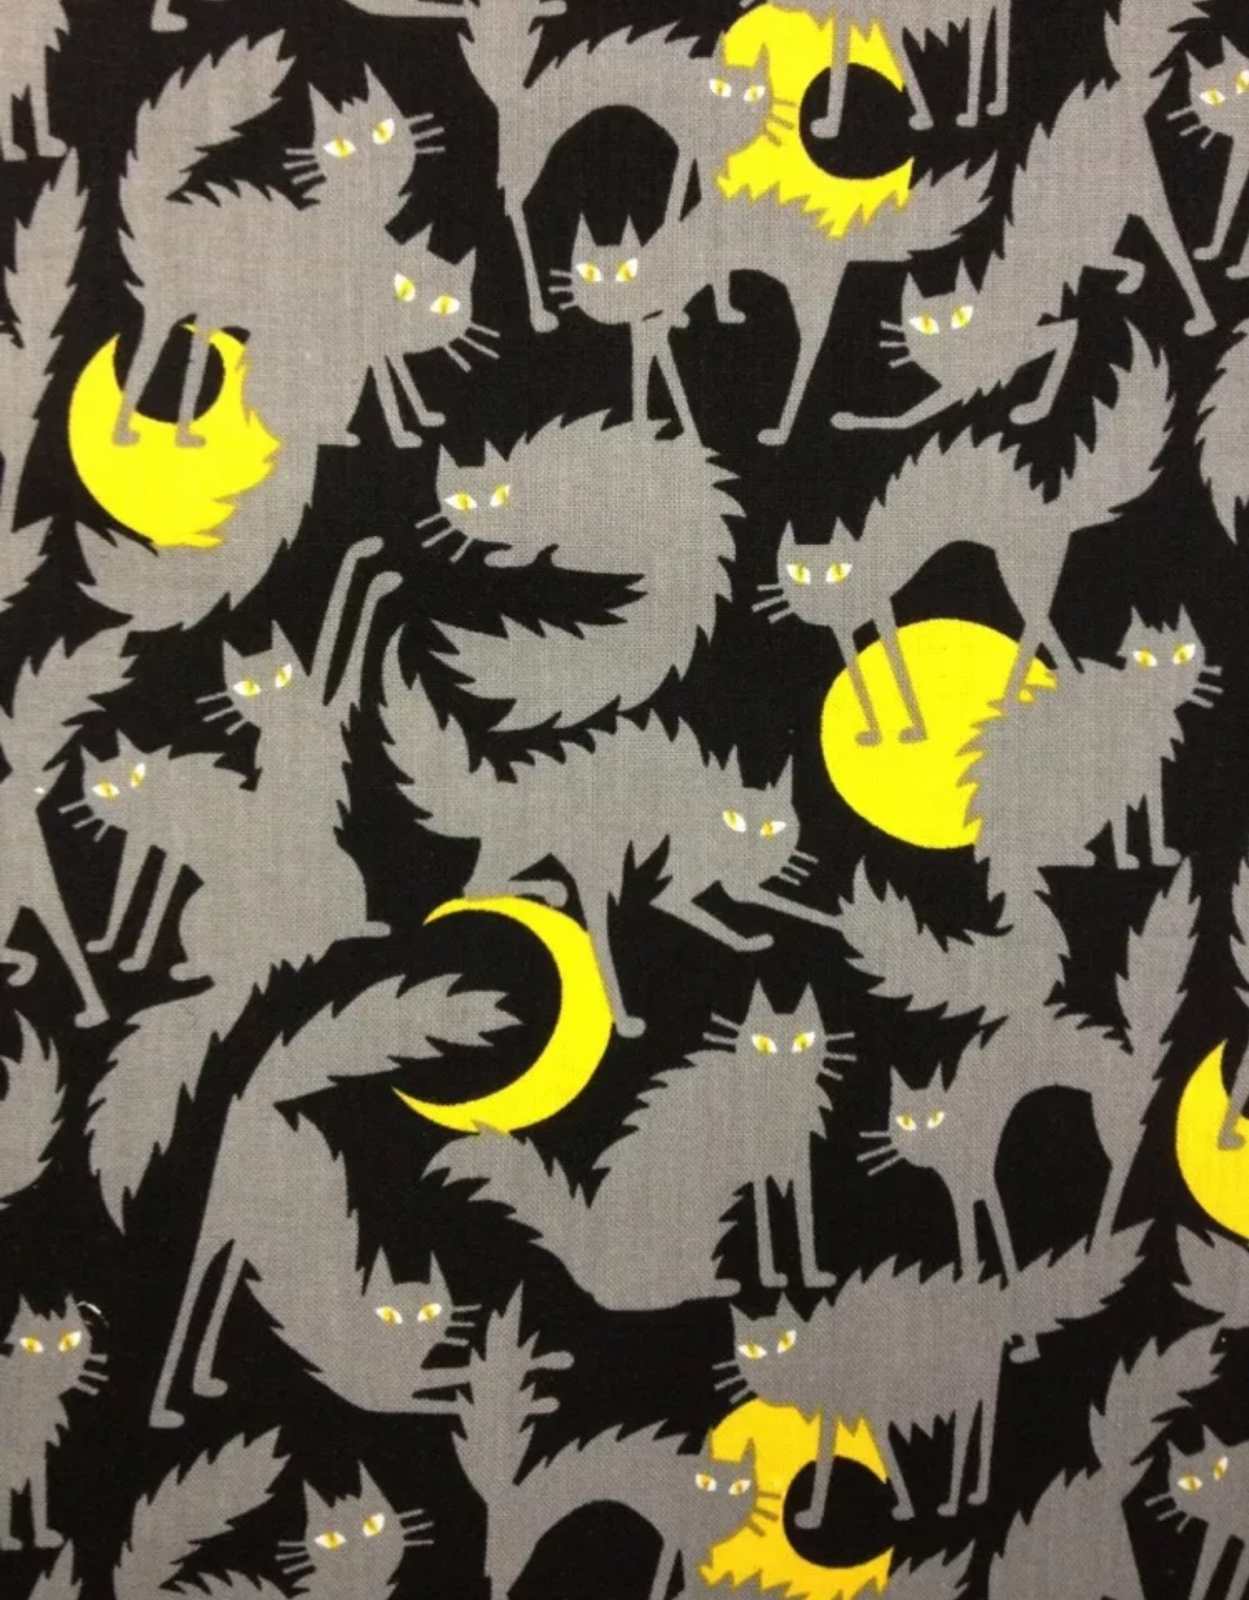 Ghastley Cat Gray Scaredy Cats Kitten Crescent Moons Halloween Cotton Fabric Quilt Fabric R62 FF73